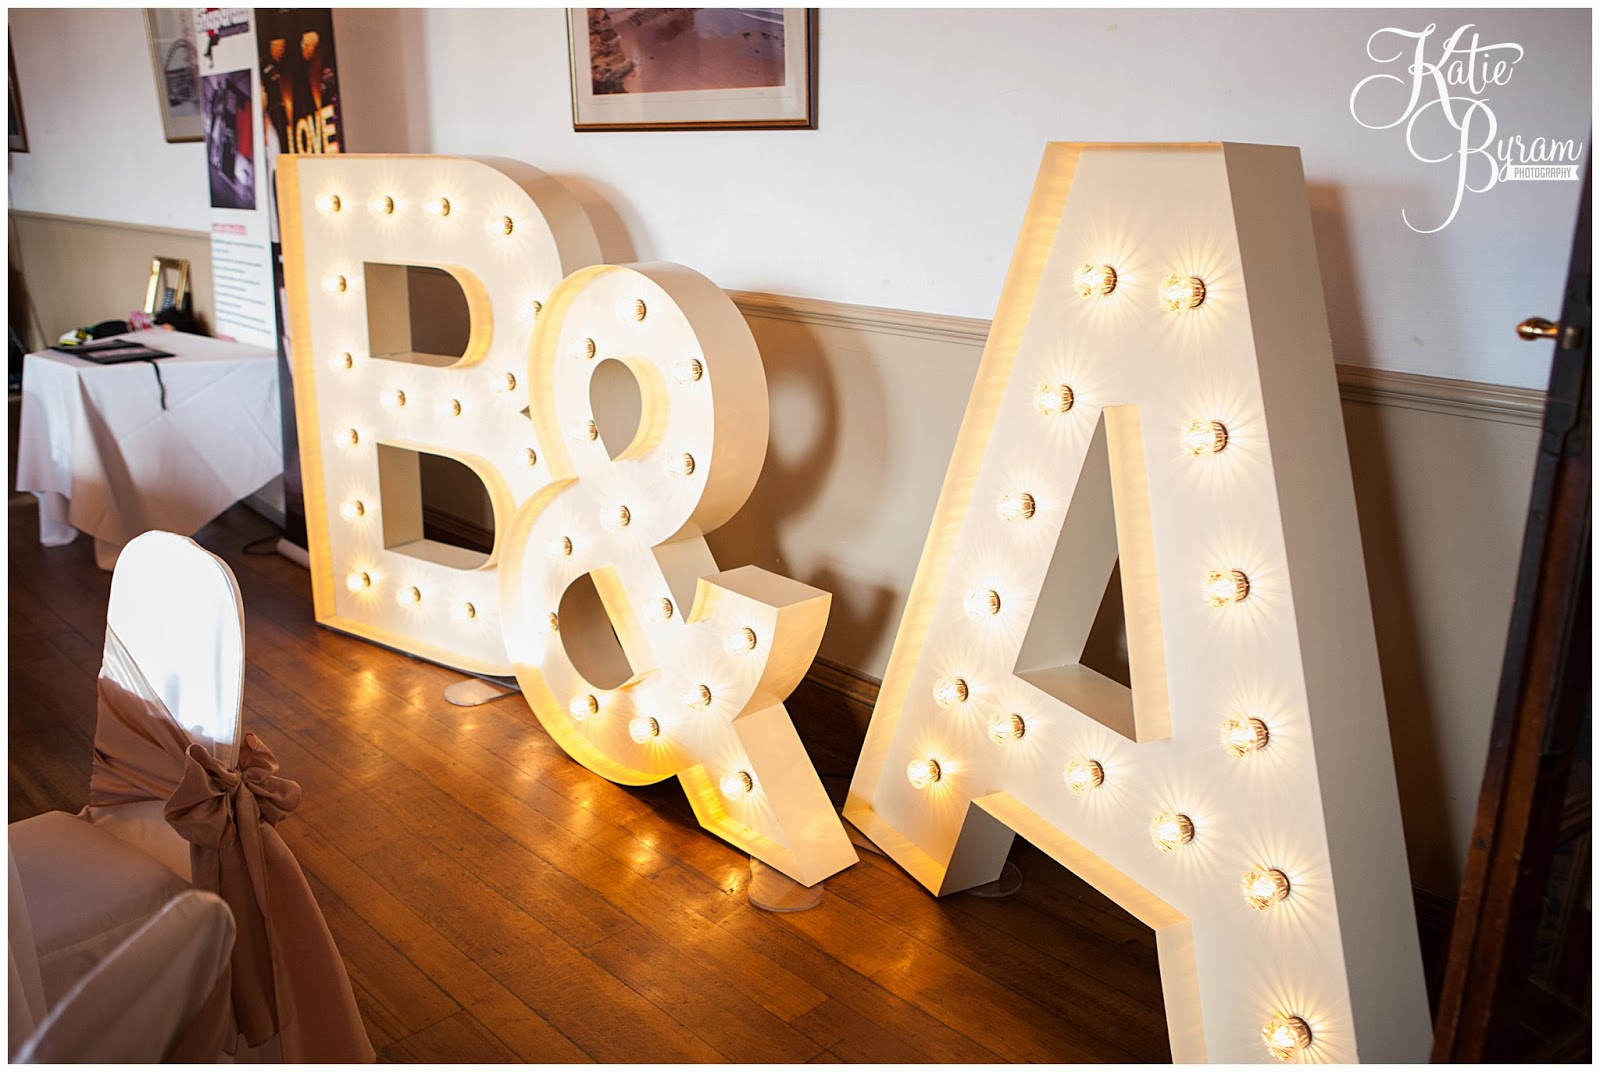 coco luminaire, light up letters wedding, kirkley hall wedding fair, kirkley hall wedding, kirkley hall wedding showcase, katie byram photography, by wendy stationery, floral quarter, mark deeks music, northumberland wedding venue,